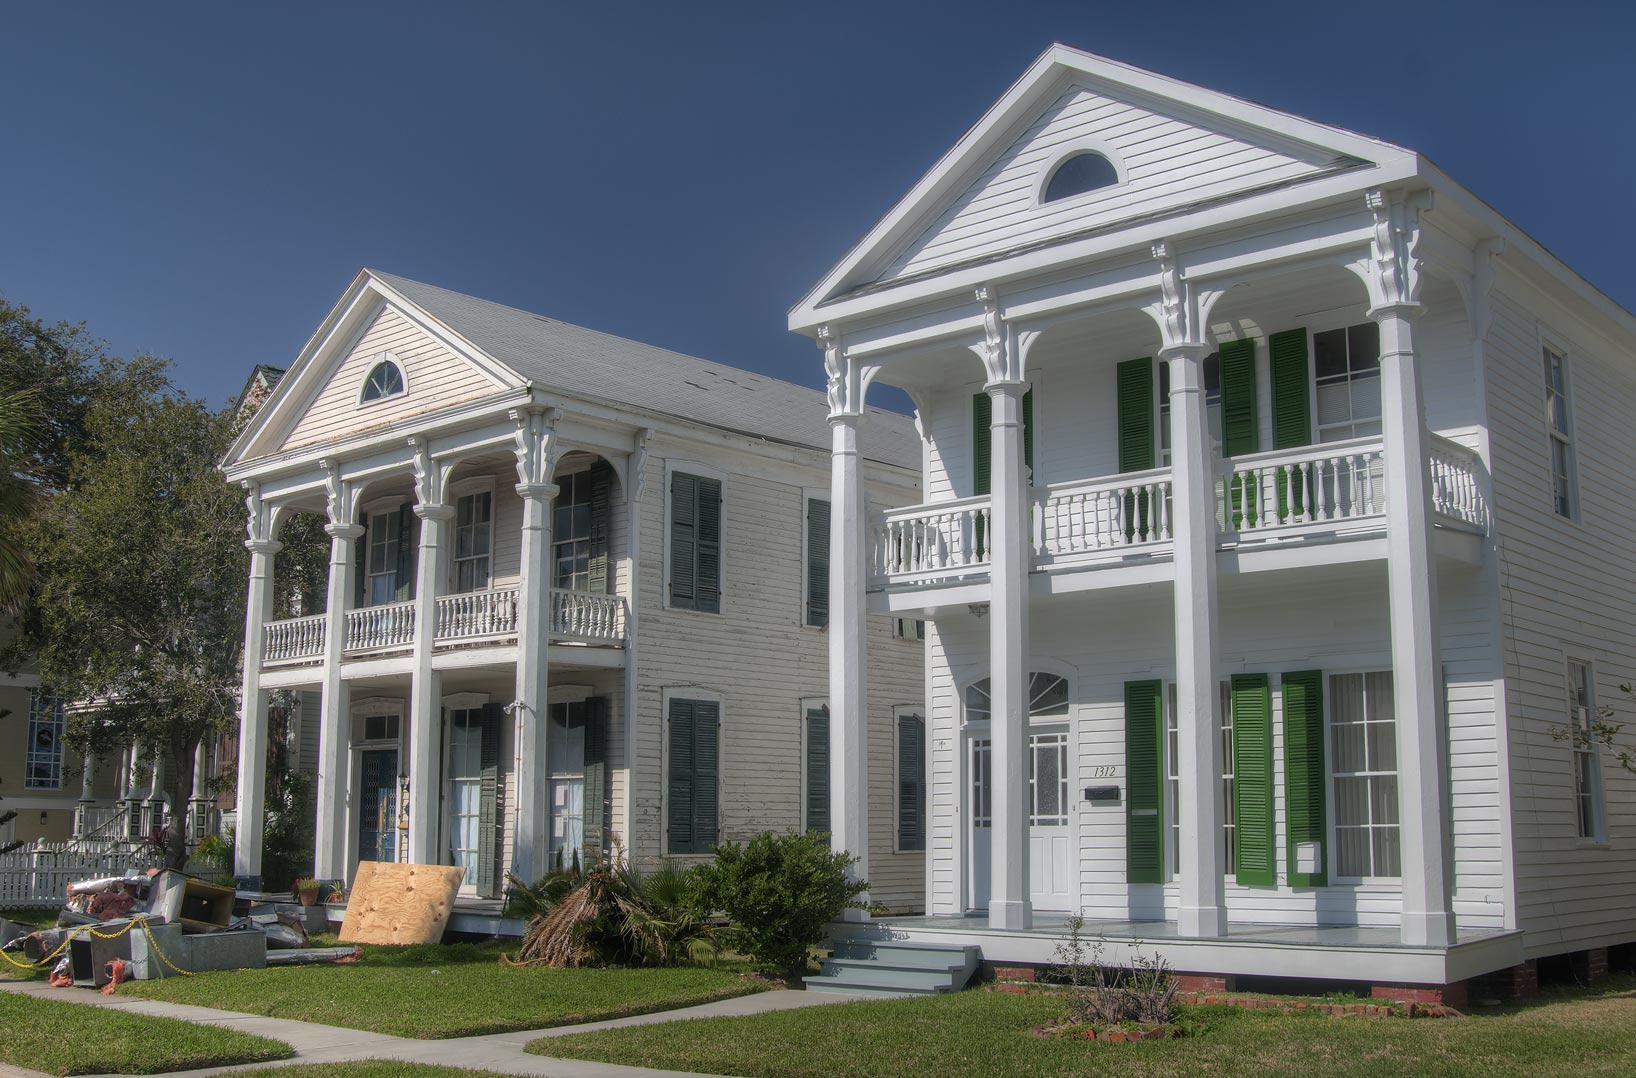 Houses on Sealy Street in East End Historic District. Galveston, Texas